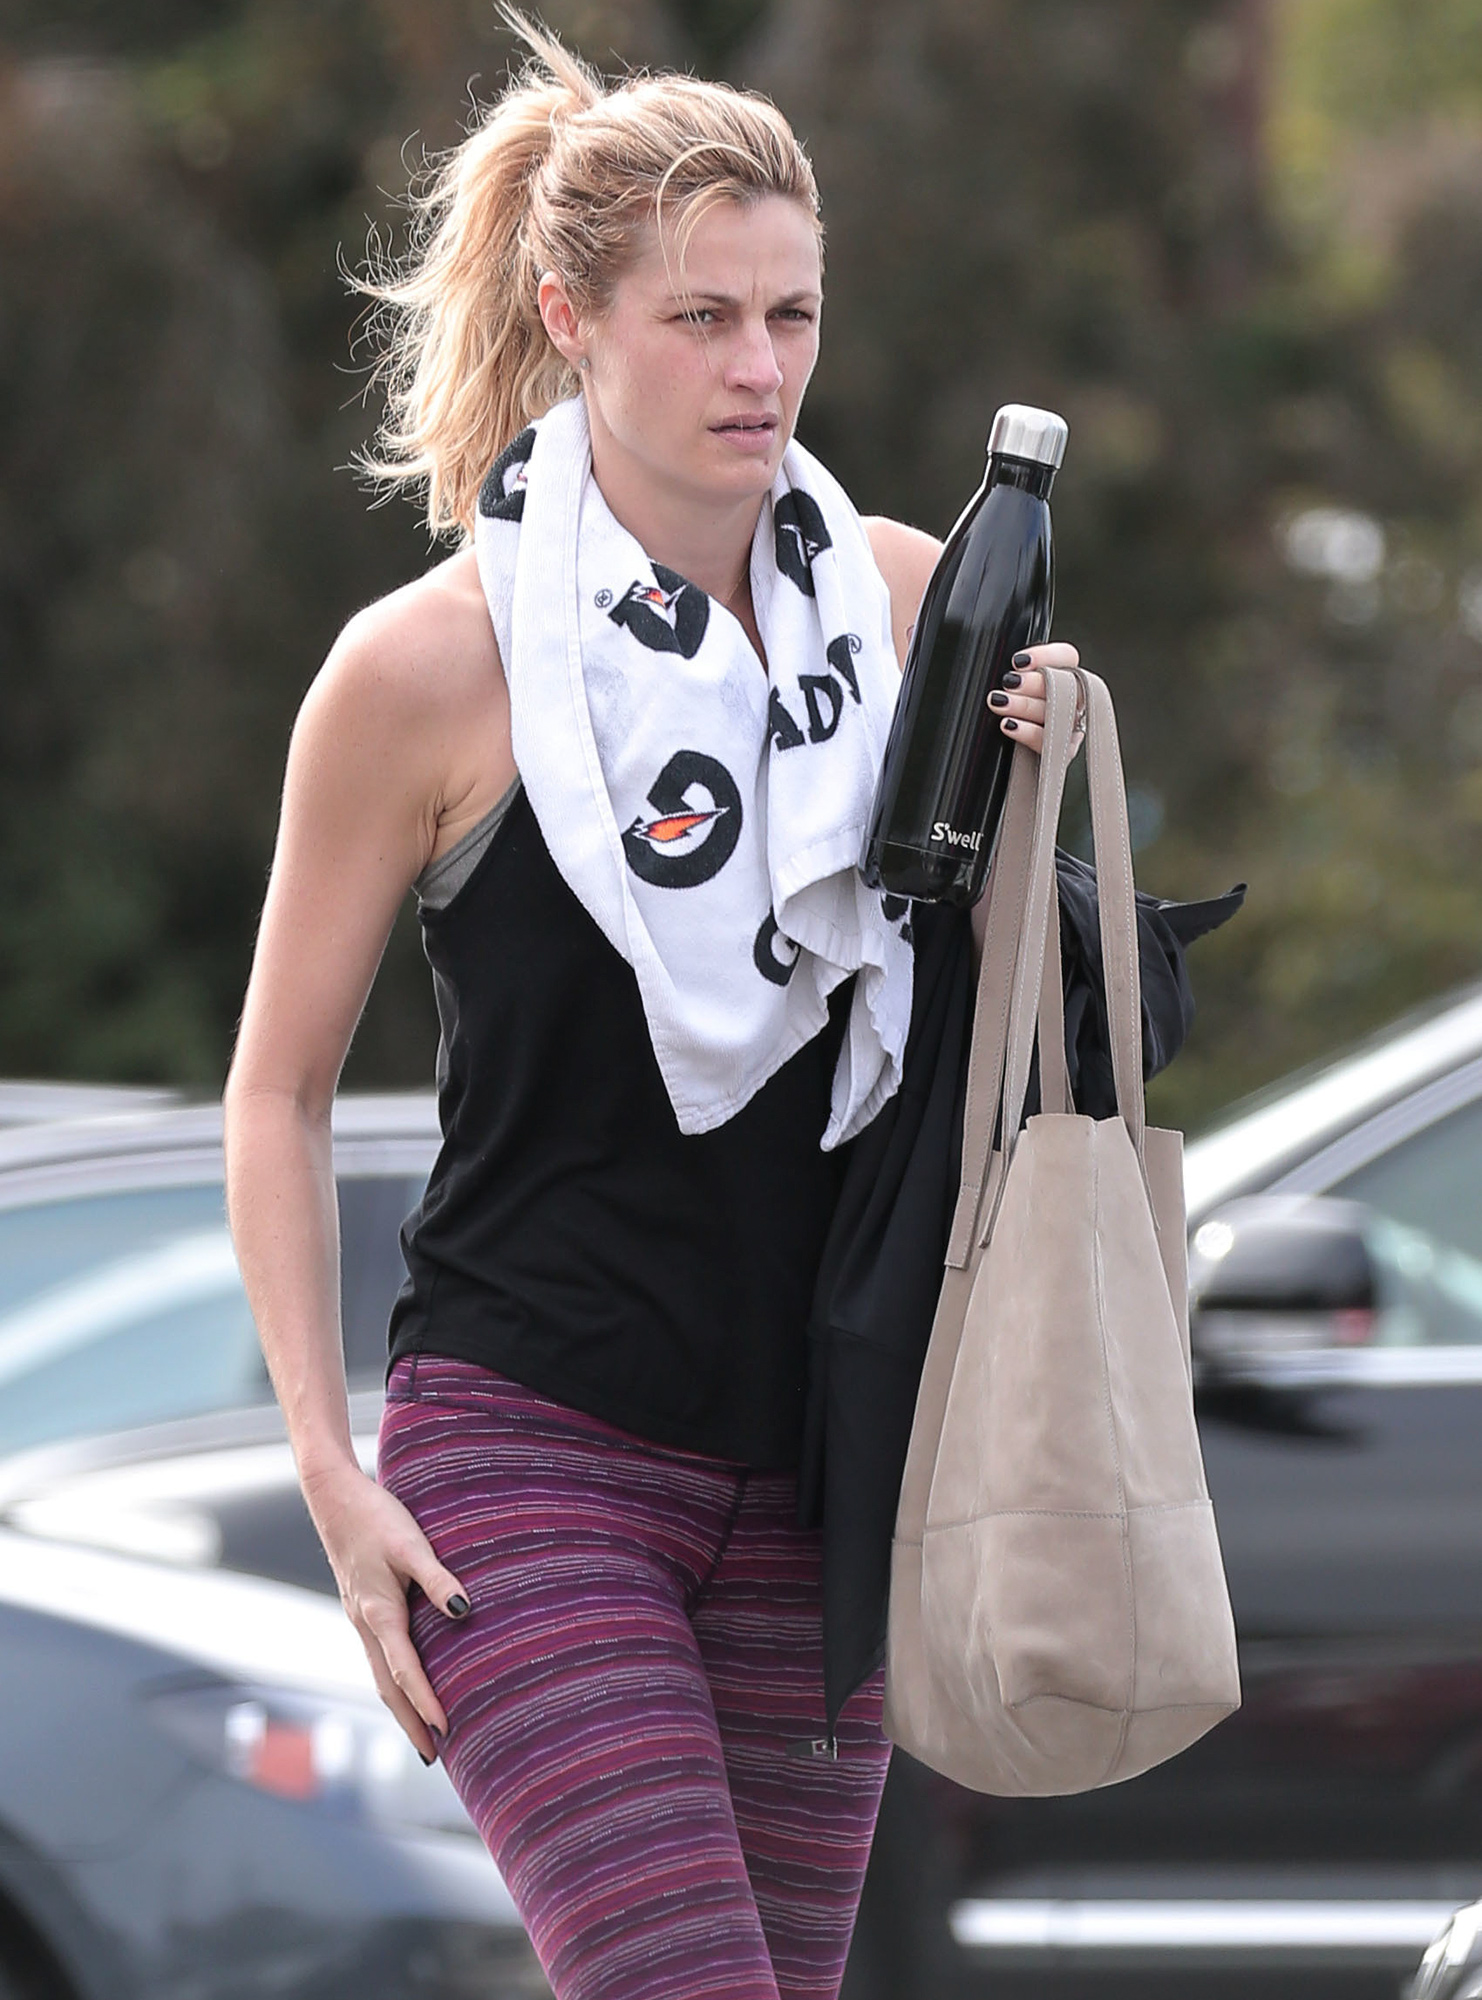 EXCLUSIVE: A newly engaged, make-up free Erin Andrews wears her engagement ring after a grueling workout in Los Angeles